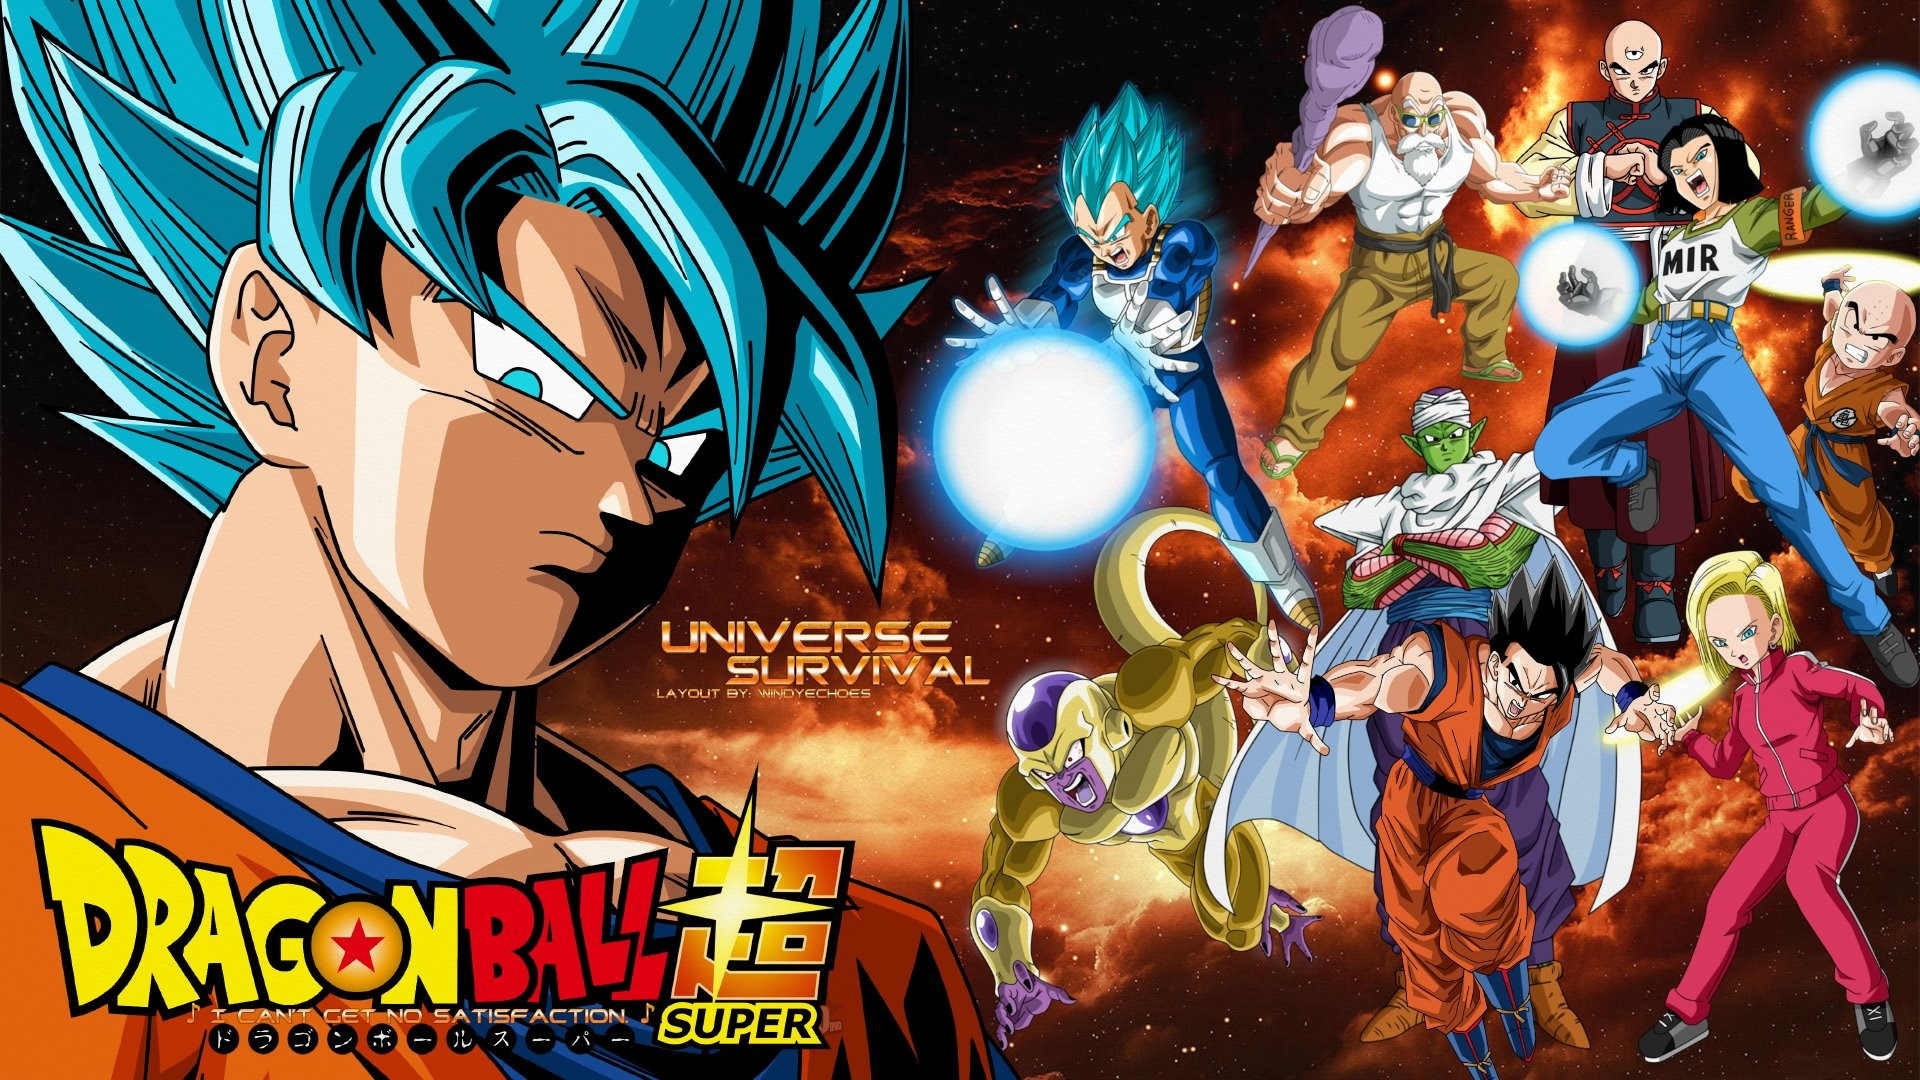 … Dragon Ball Super – Universe 7 Survival Wallpaper by WindyEchoes